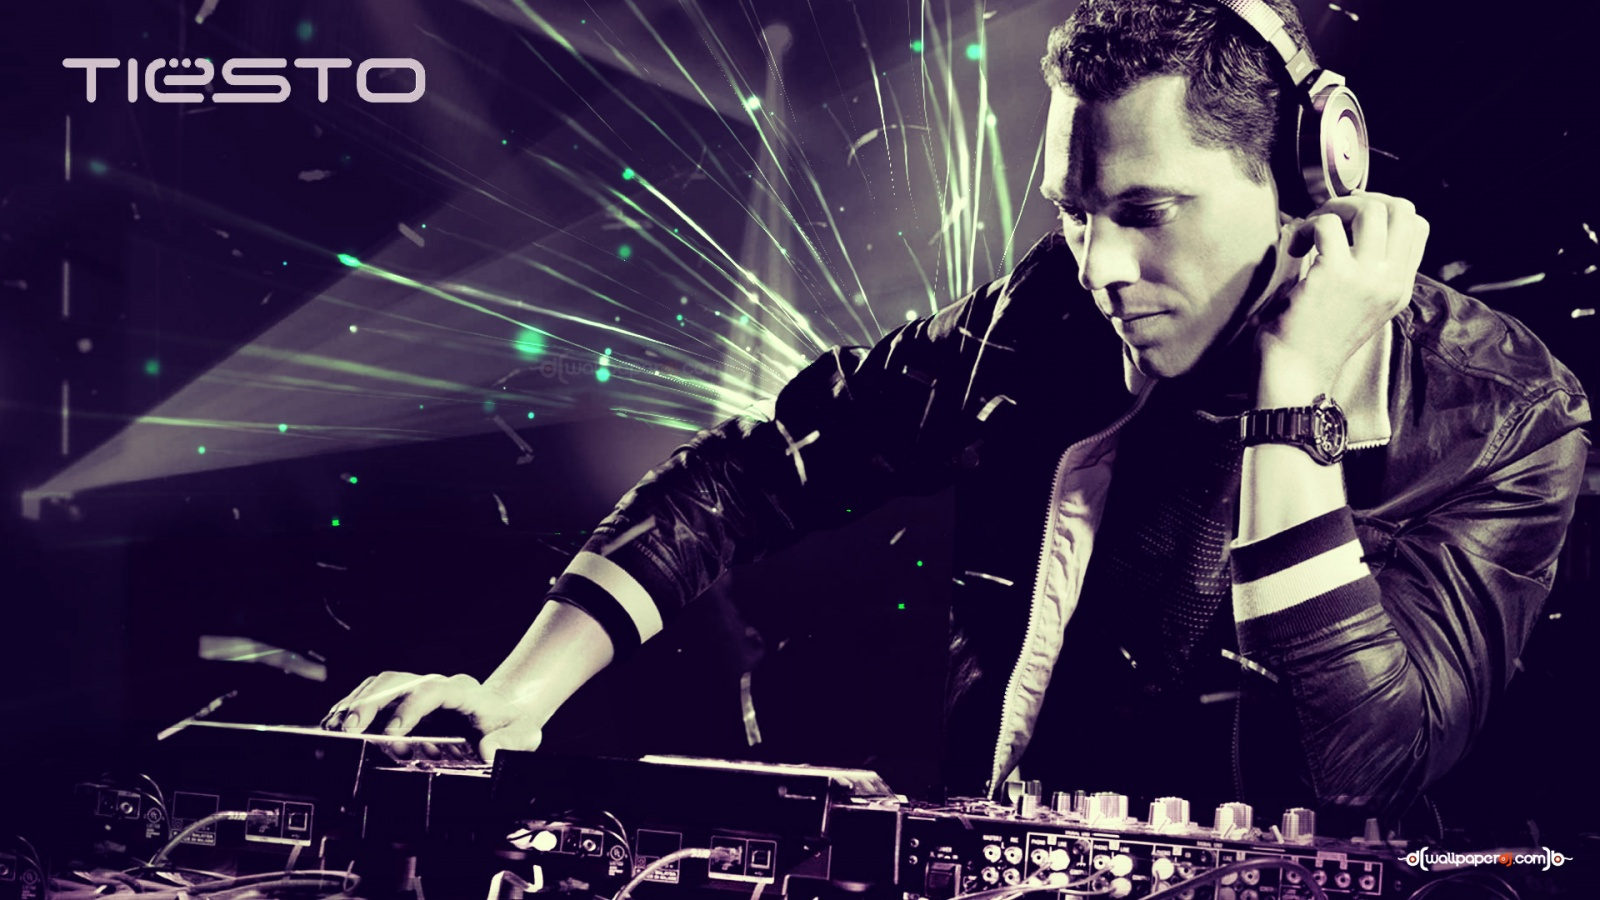 1600x900 Dj Tiesto wallpaper music and dance wallpapers 1600x900